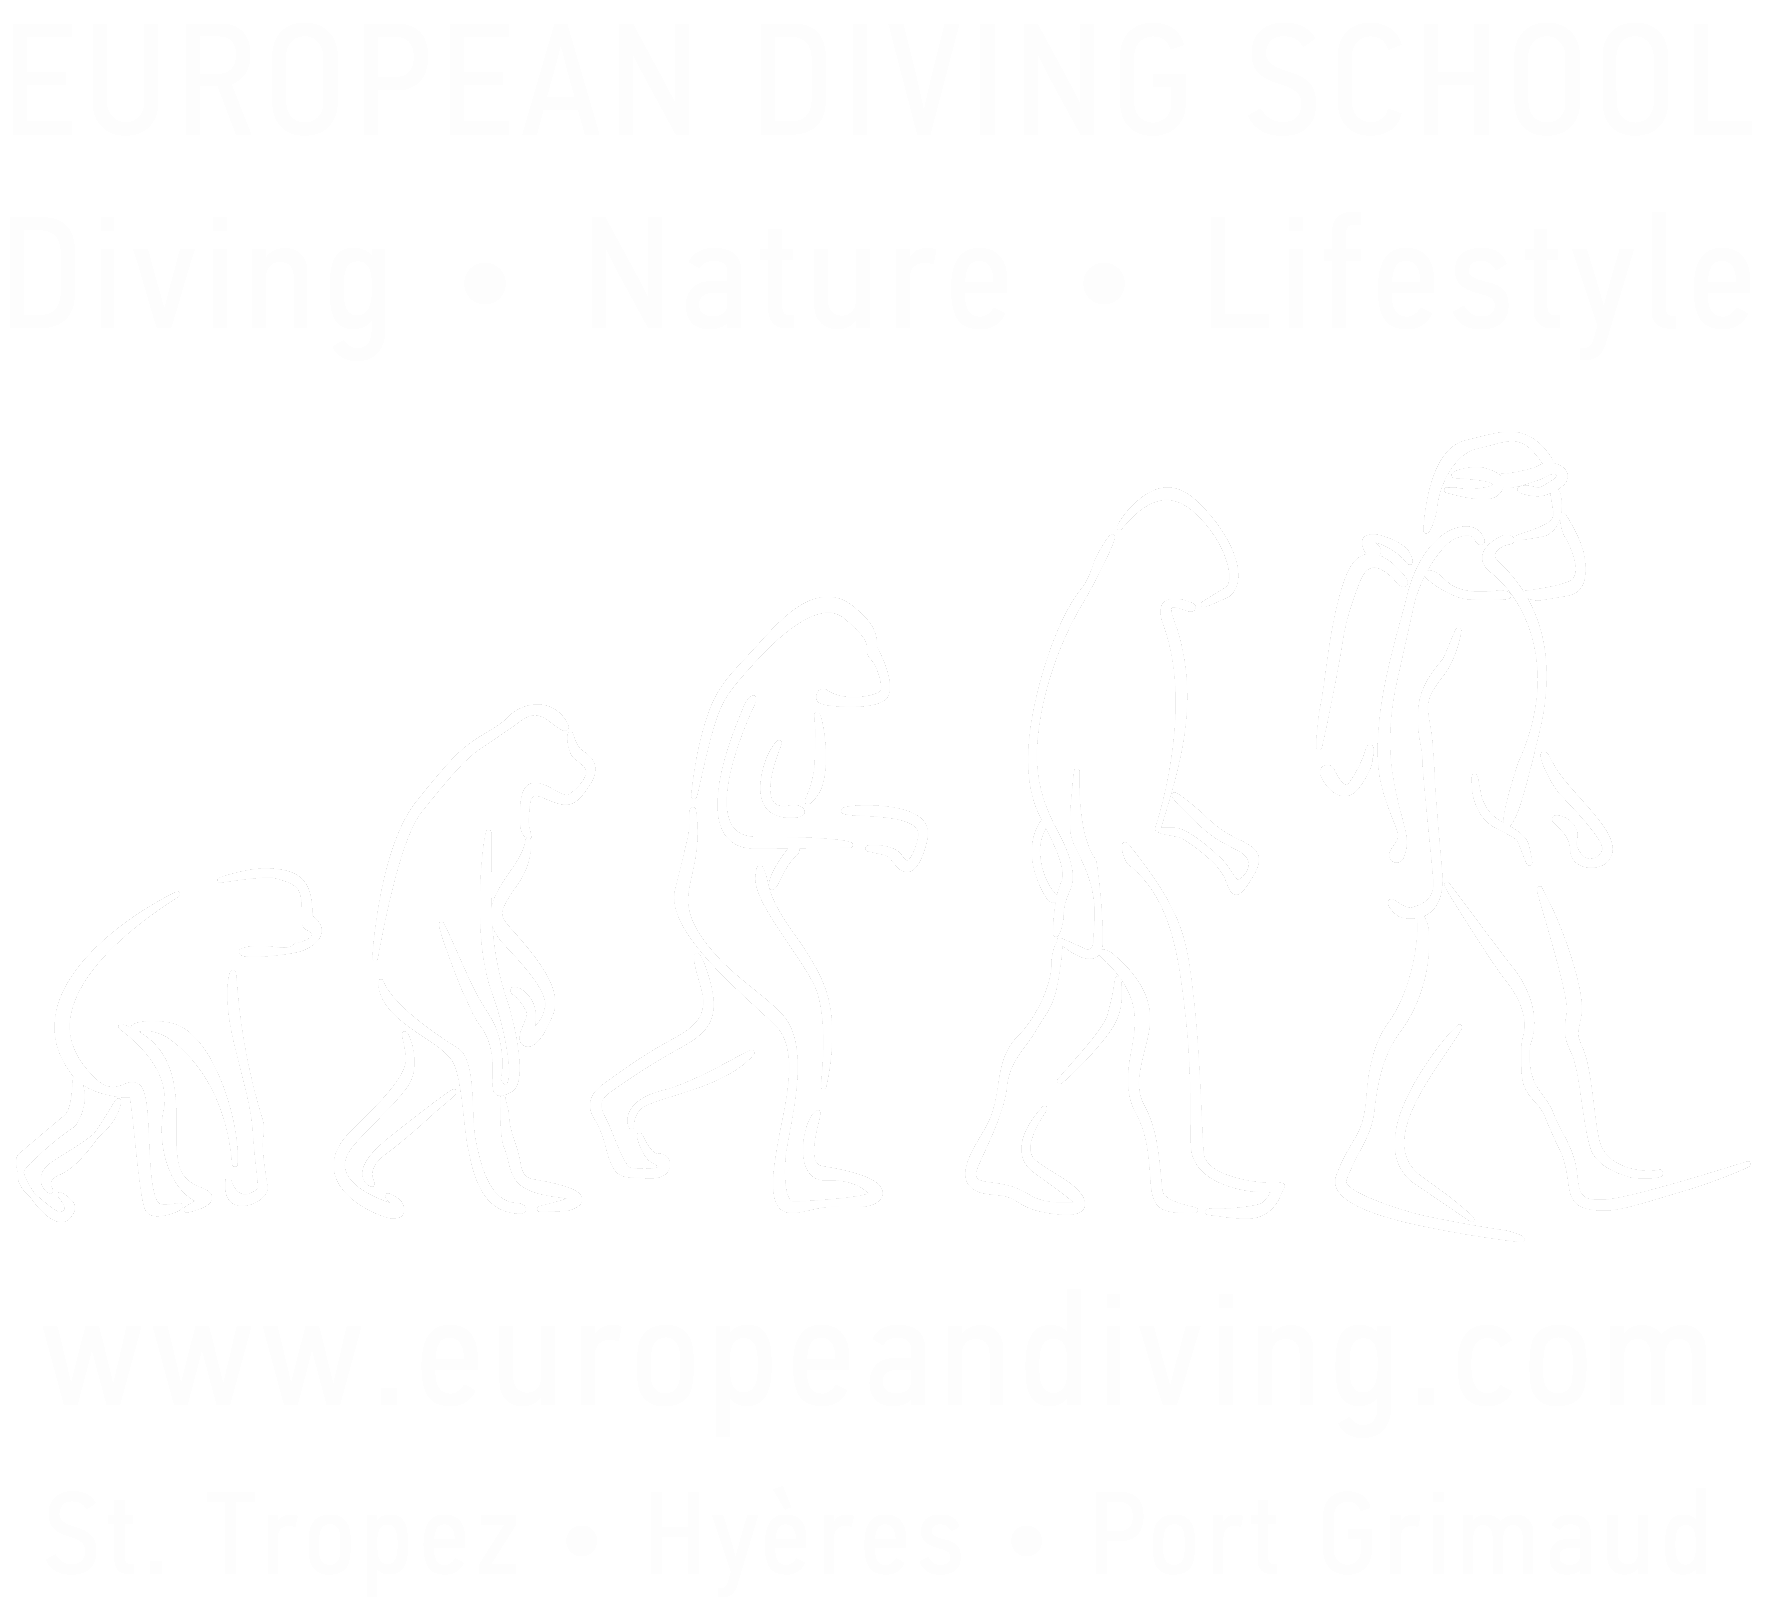 151219 logo shirt 02 - European Diving School